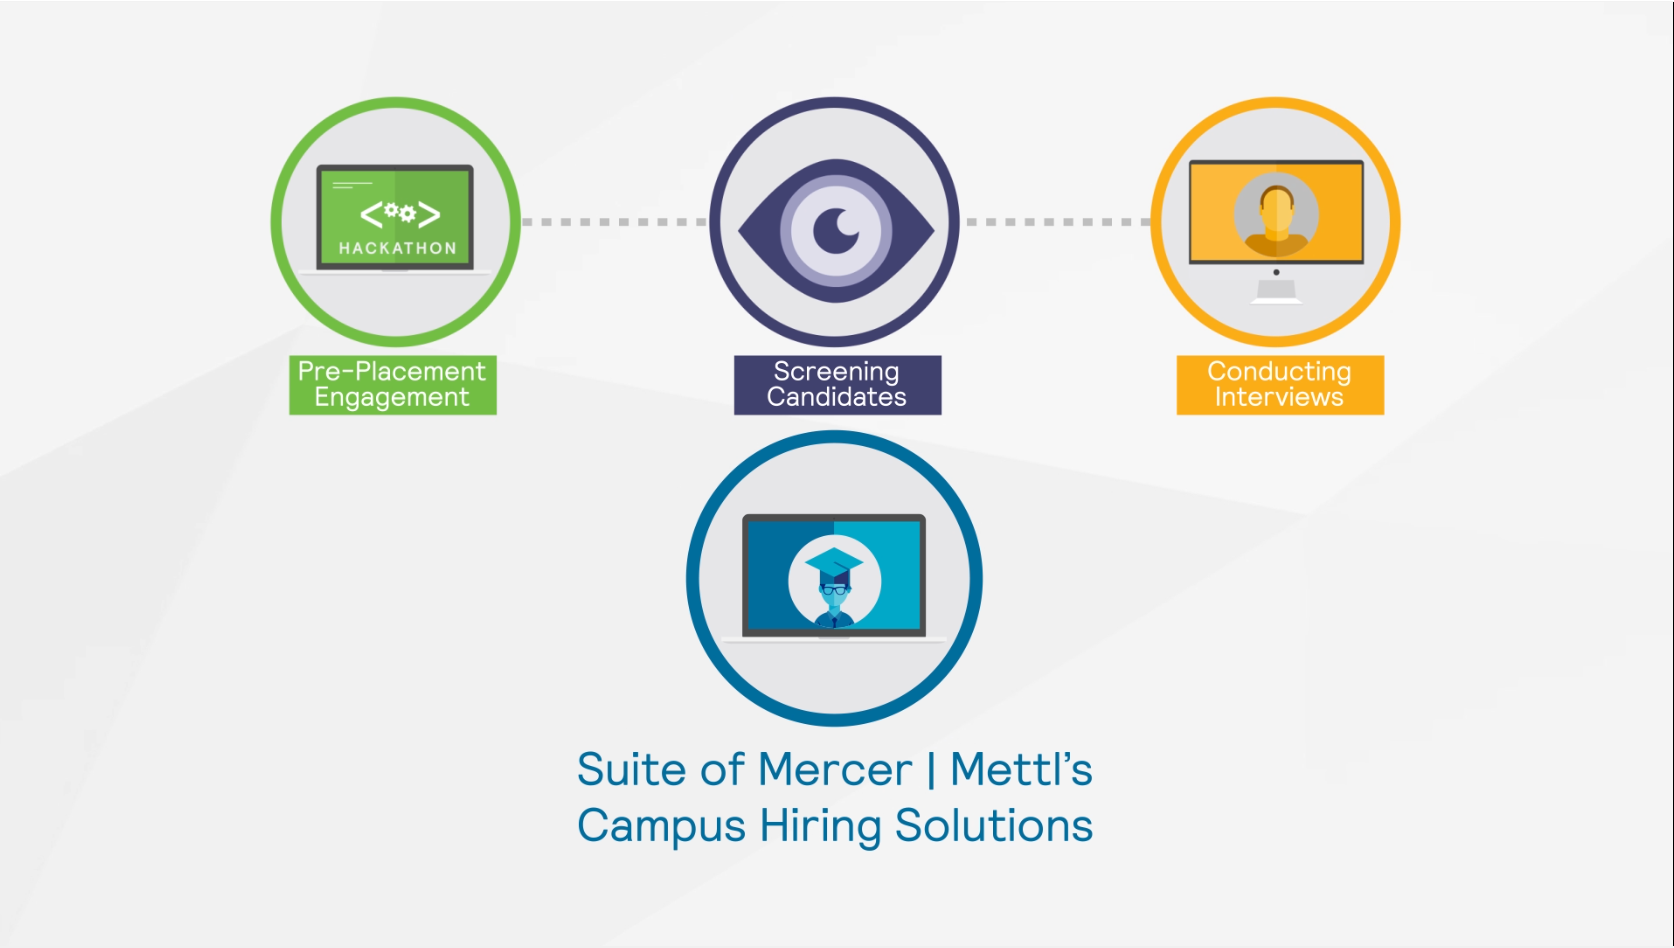 Technology in Campus Hiring-Mercer | Mettl